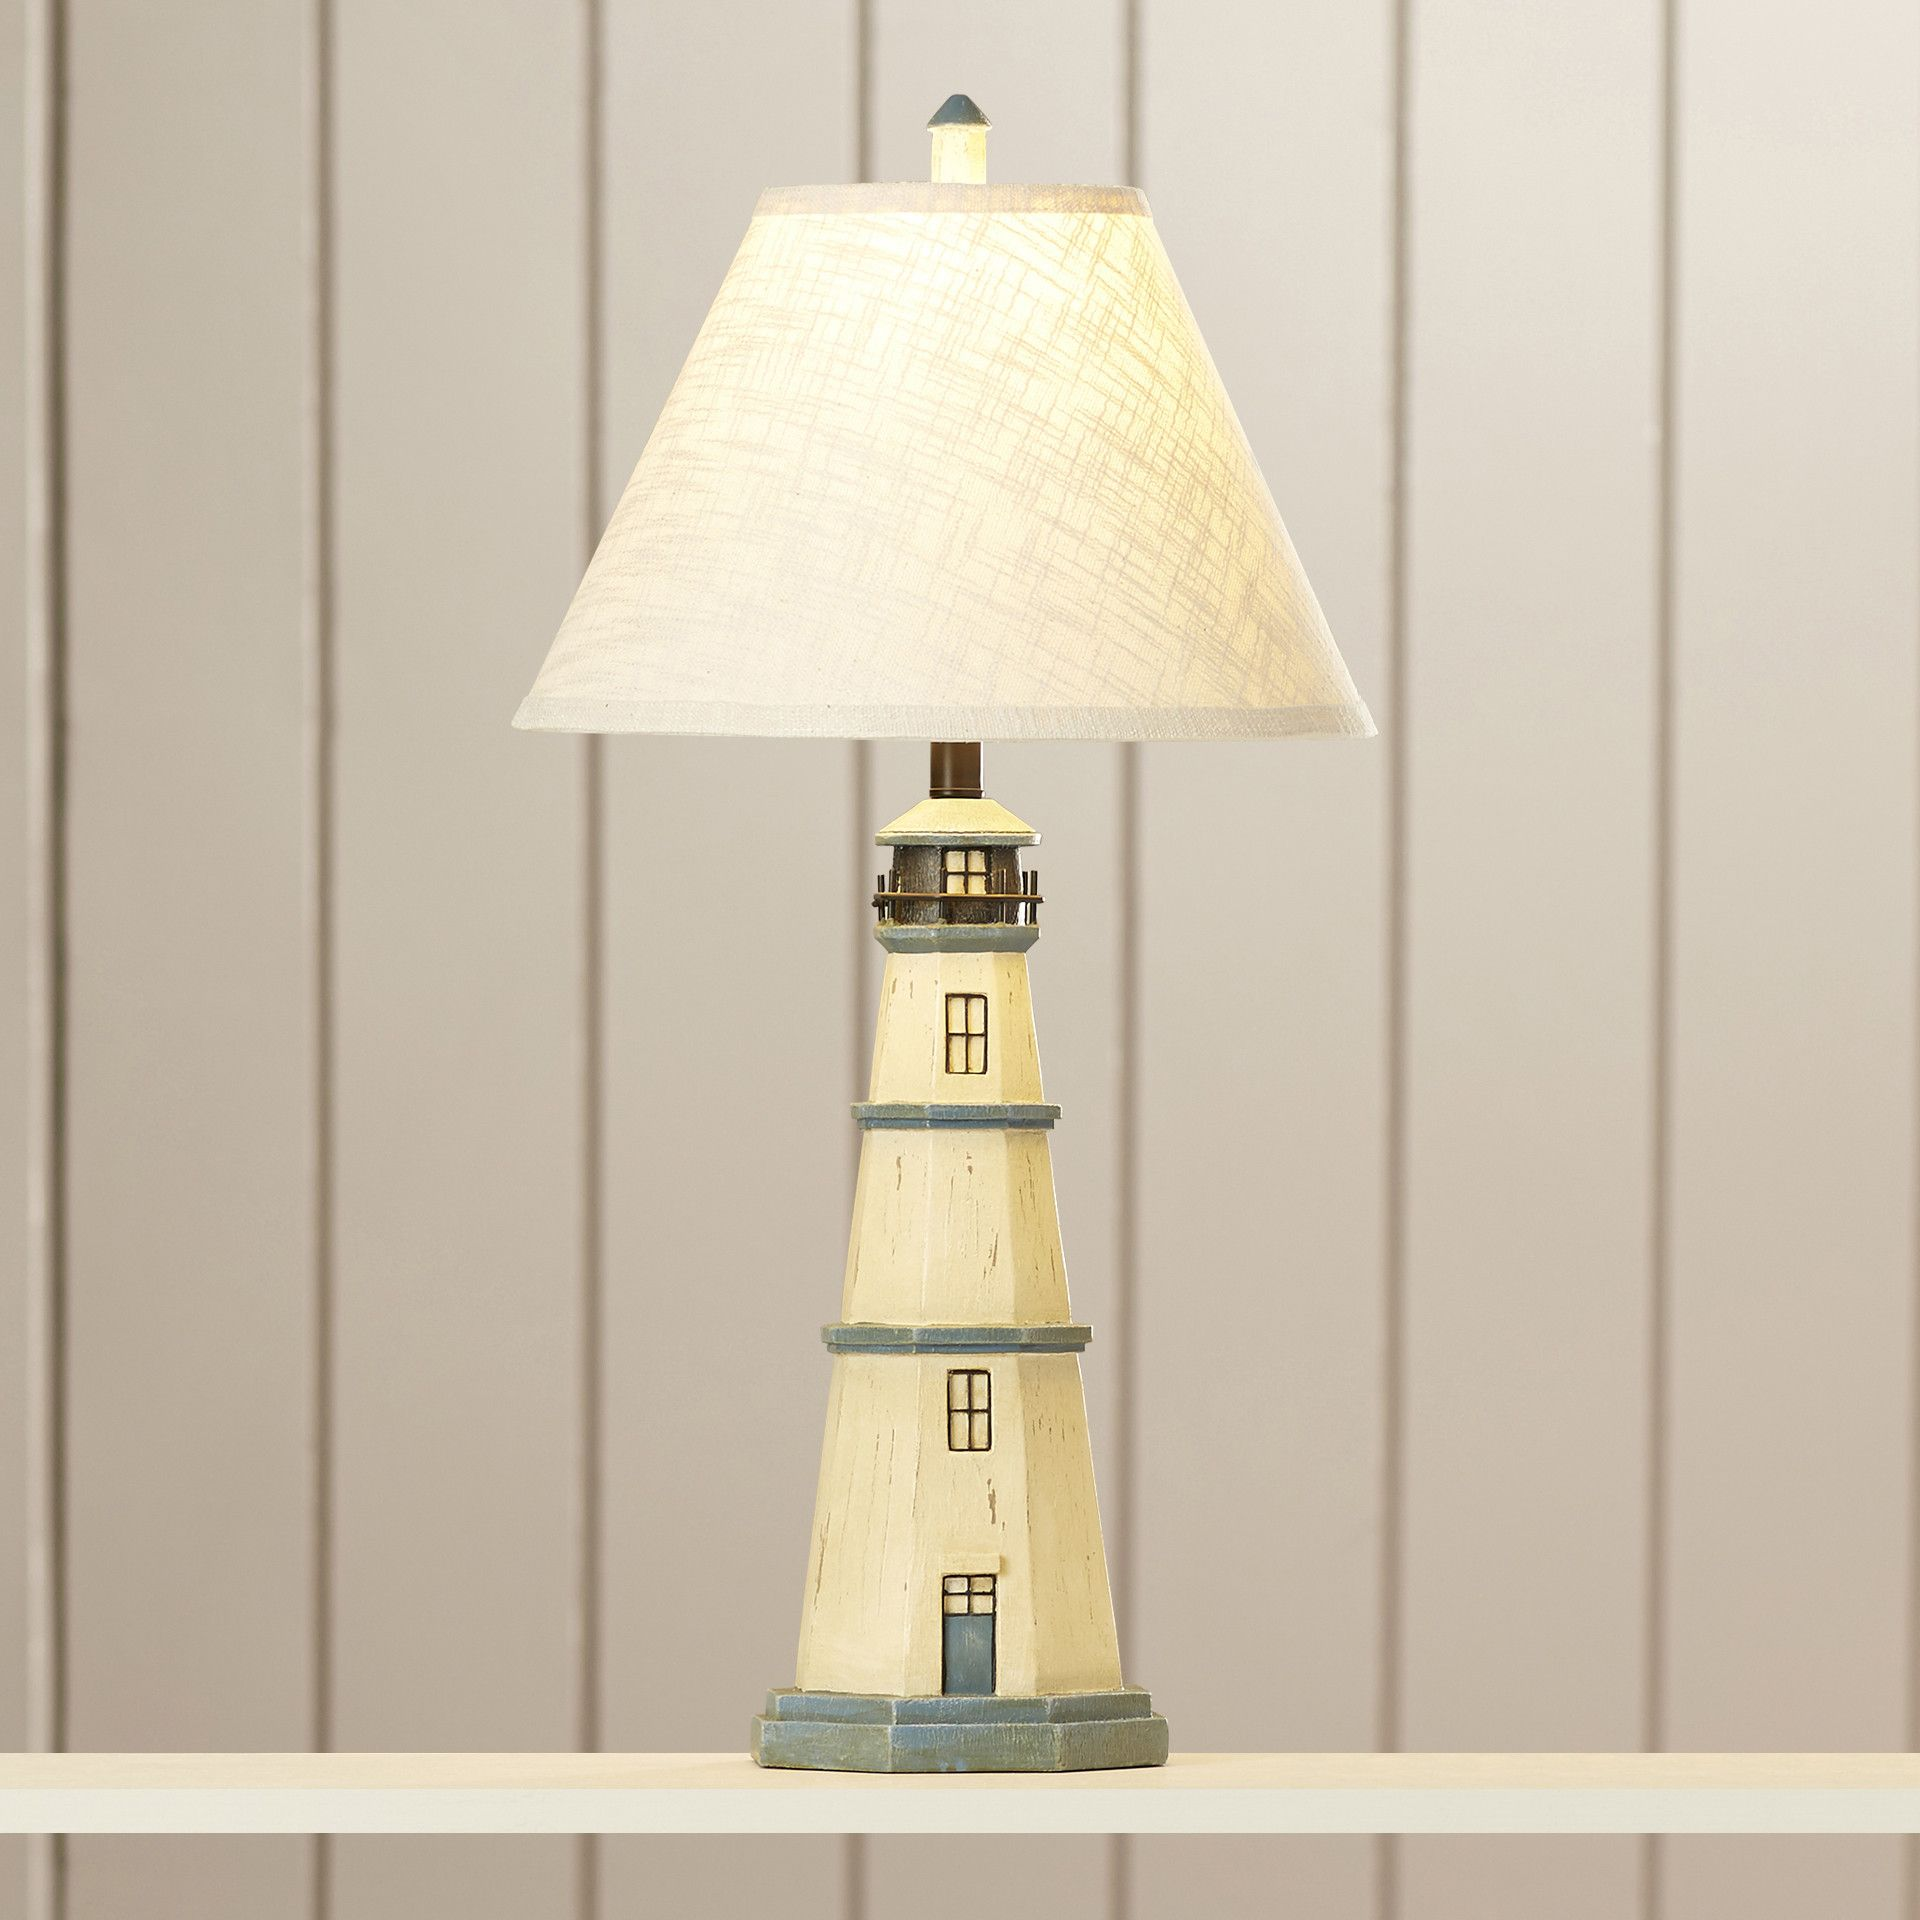 Lighthouse Table Lamp On 10 5 16 Http Www Pletely Coastal 2016 Lamps Html